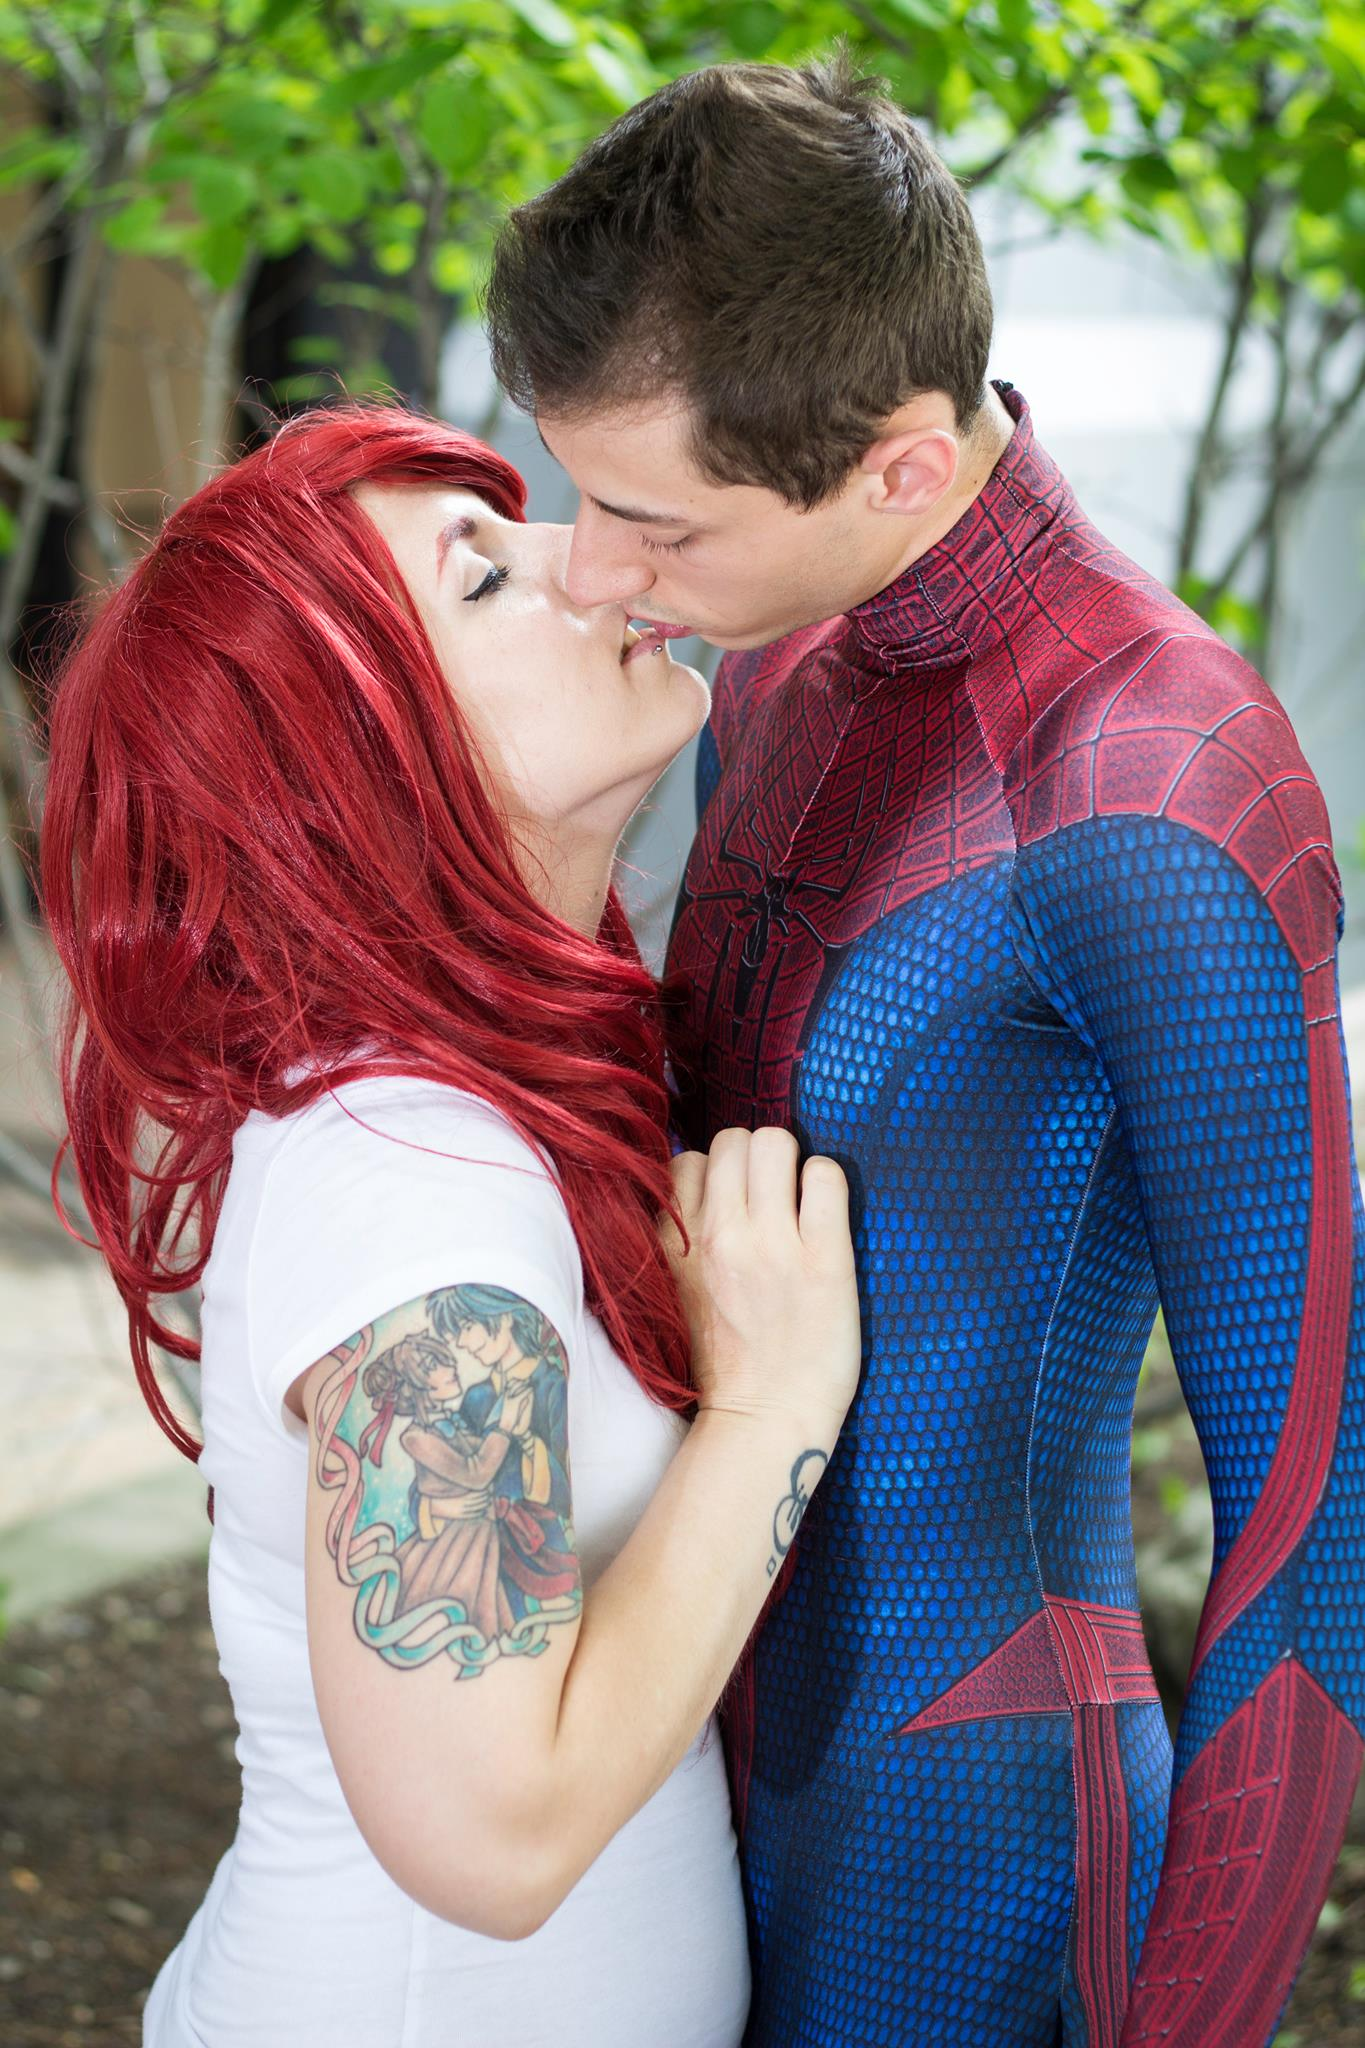 Spiderman And Mary Jane Kiss By Nikkimomo On Deviantart